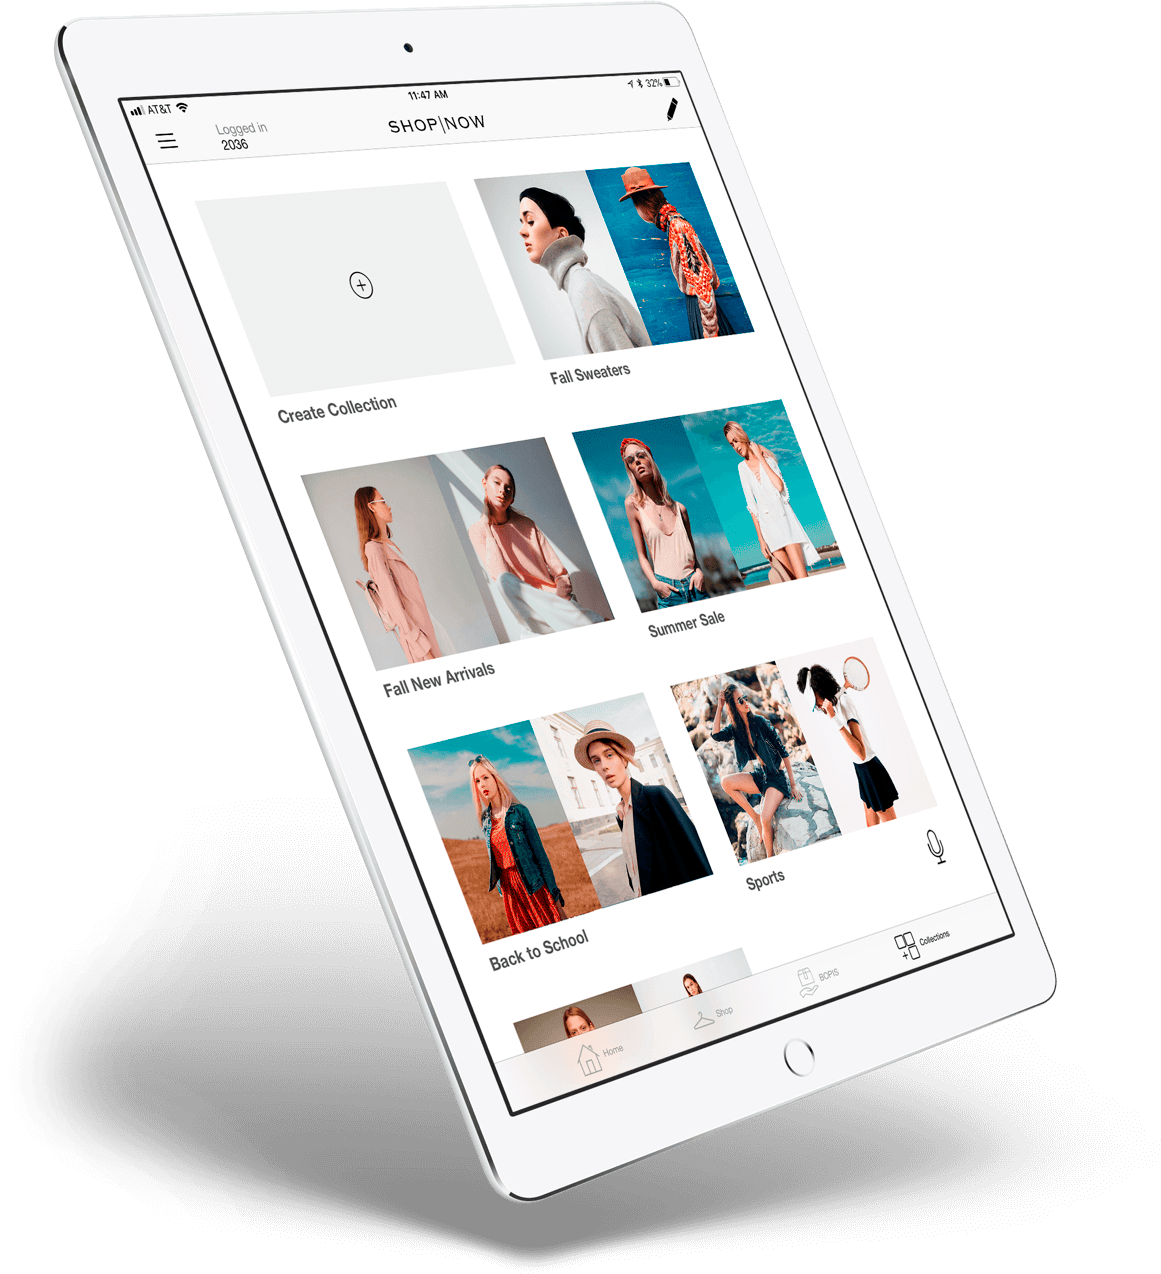 Clienteling Native Mobile App for Store Associates Powered By PredictSpring